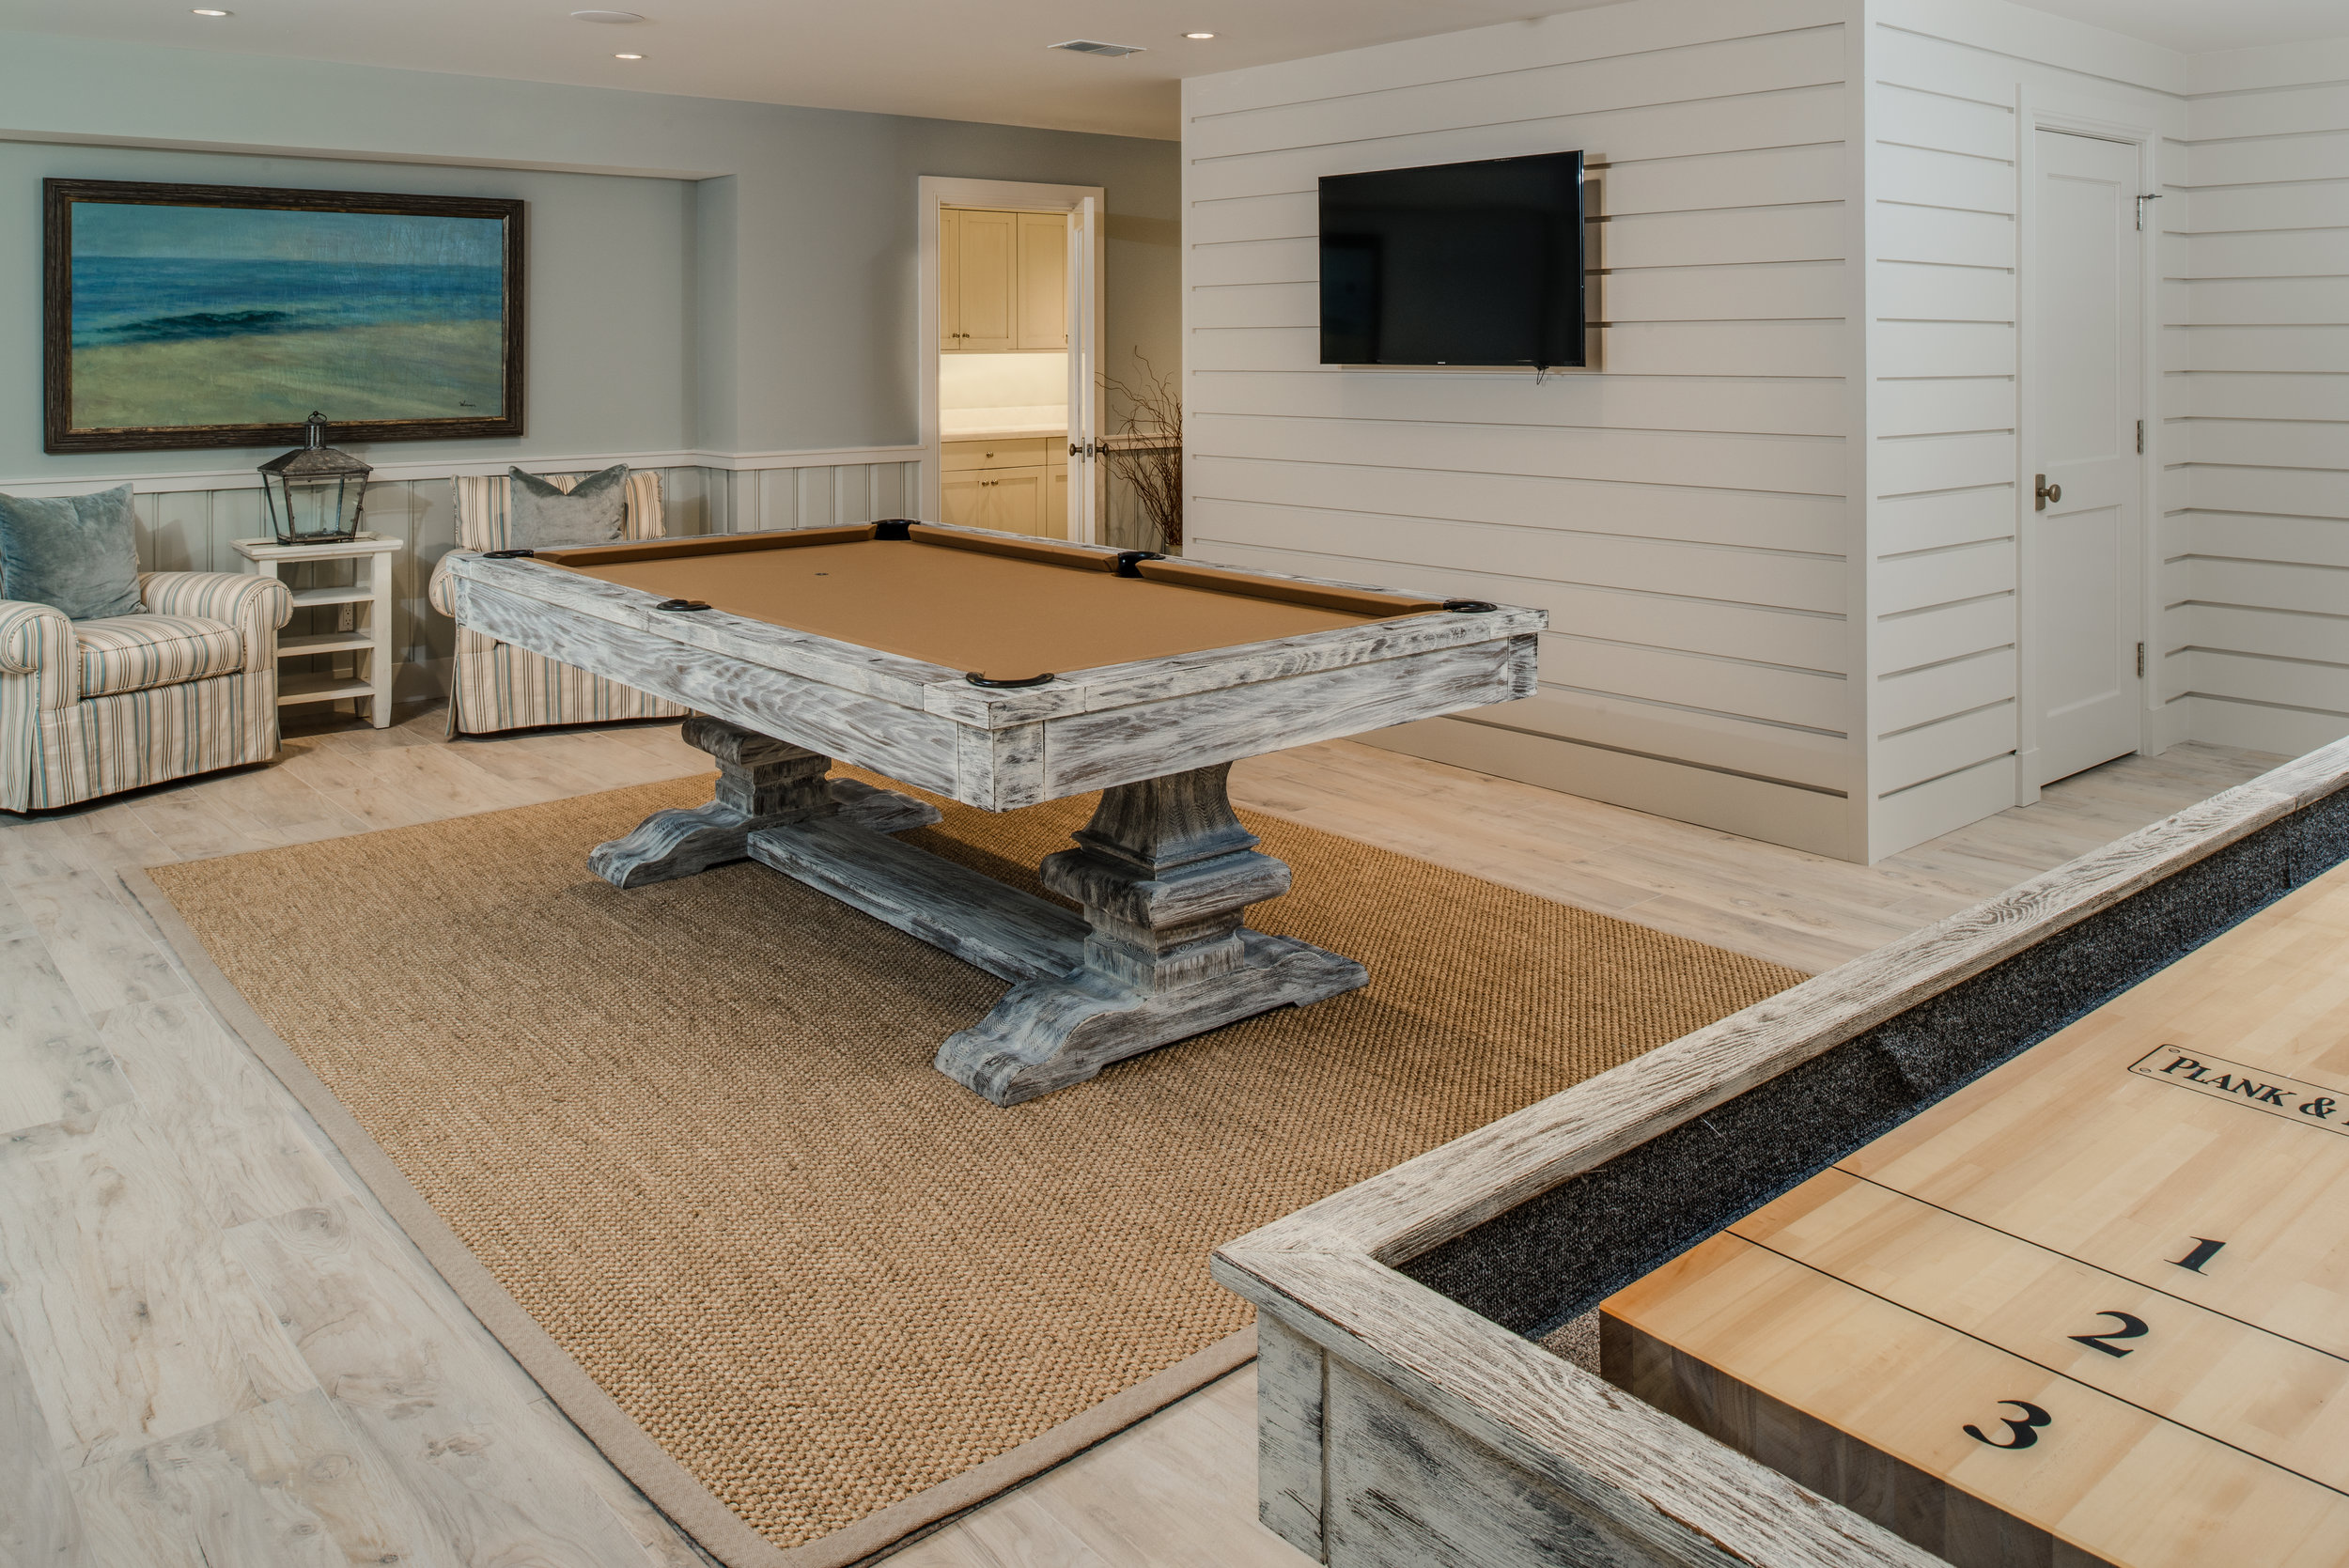 Michigan beachfront custom home and remodeling portfolio by builders and contractors, Birchwood Construction Company.